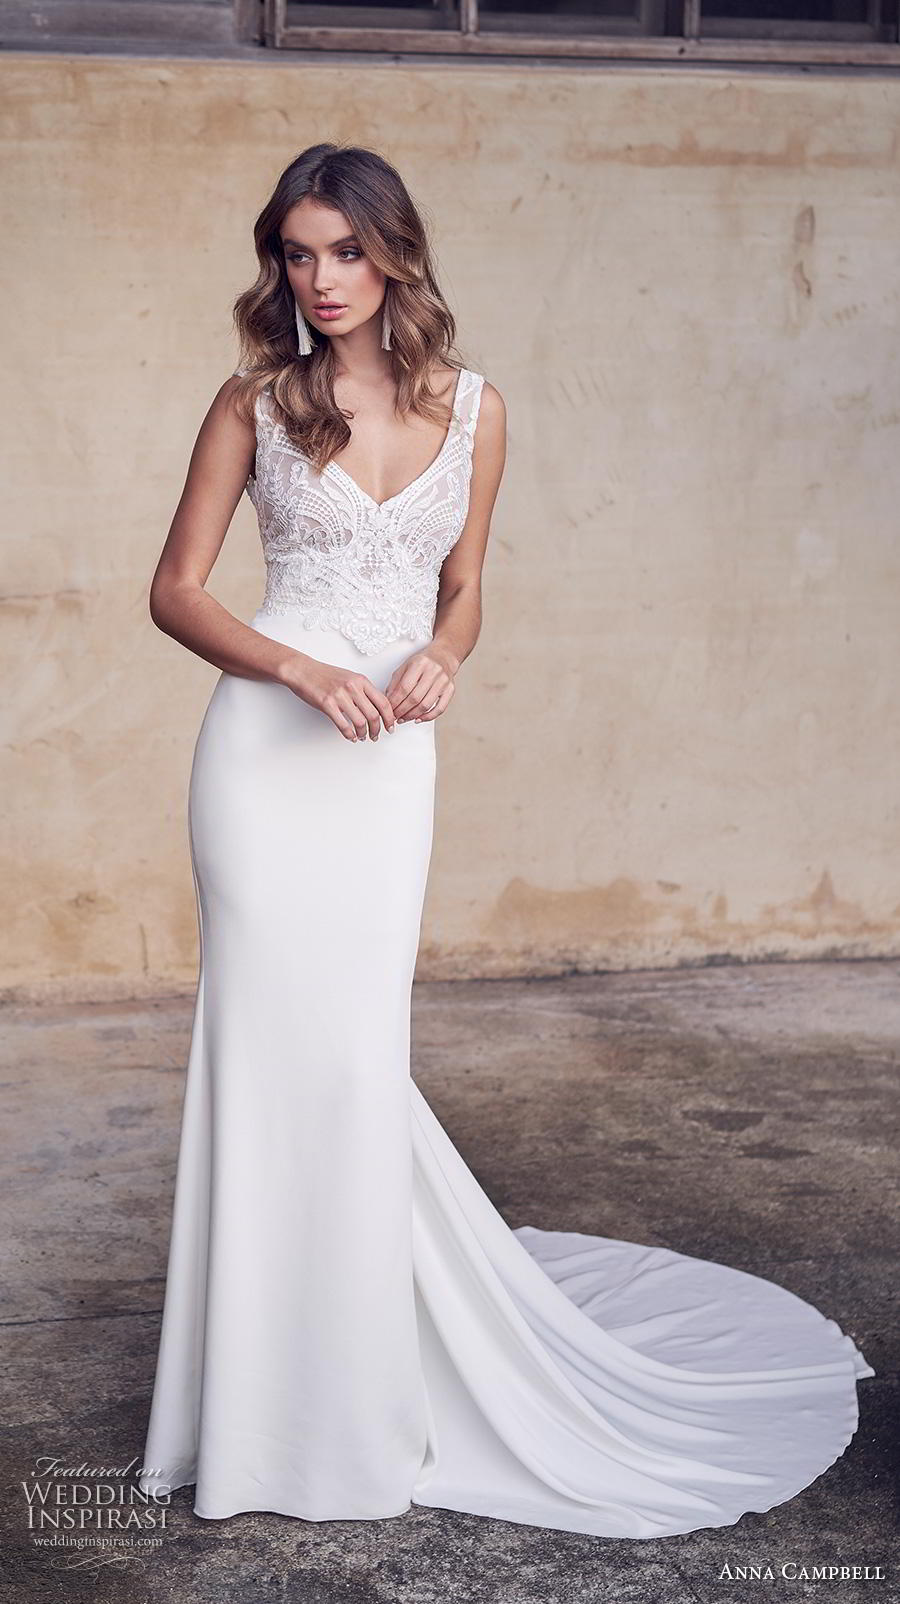 anna campbell 2019 bridal sleeveless with strap v neck heavily embellished bodice elegant sheath wedding dress backless scoop back medium train (15) mv